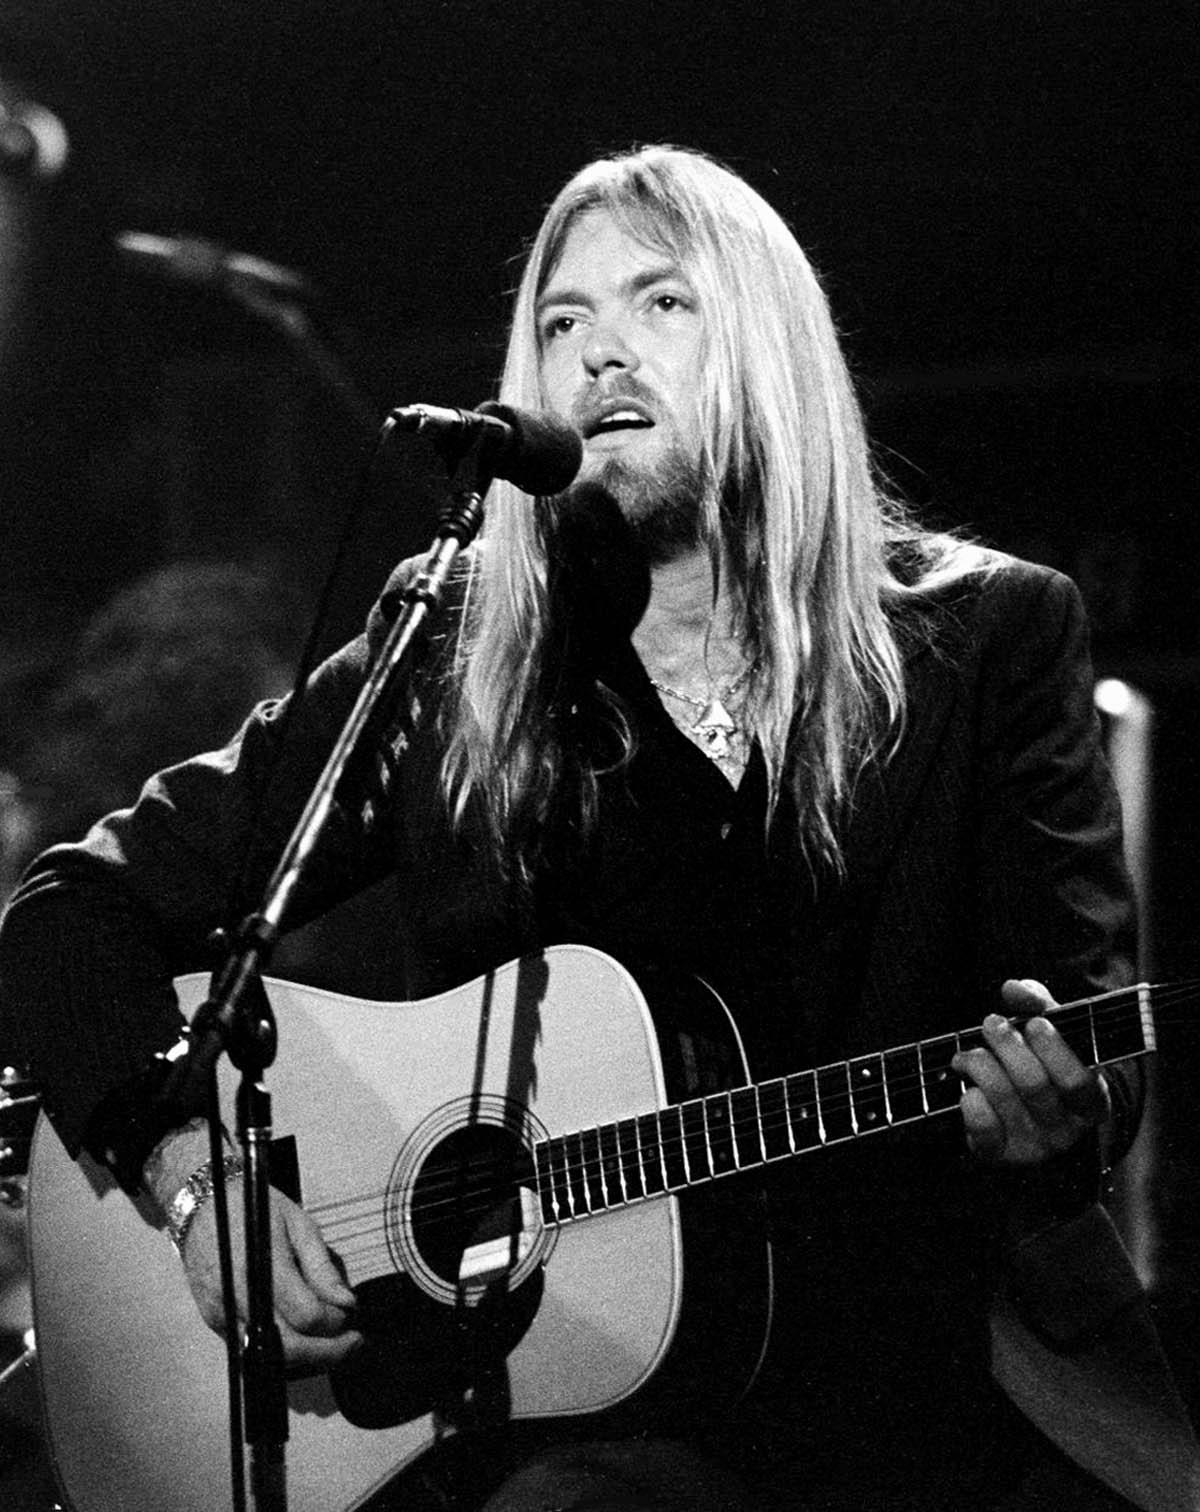 Gregg Allman Vocals  Tour Beacon